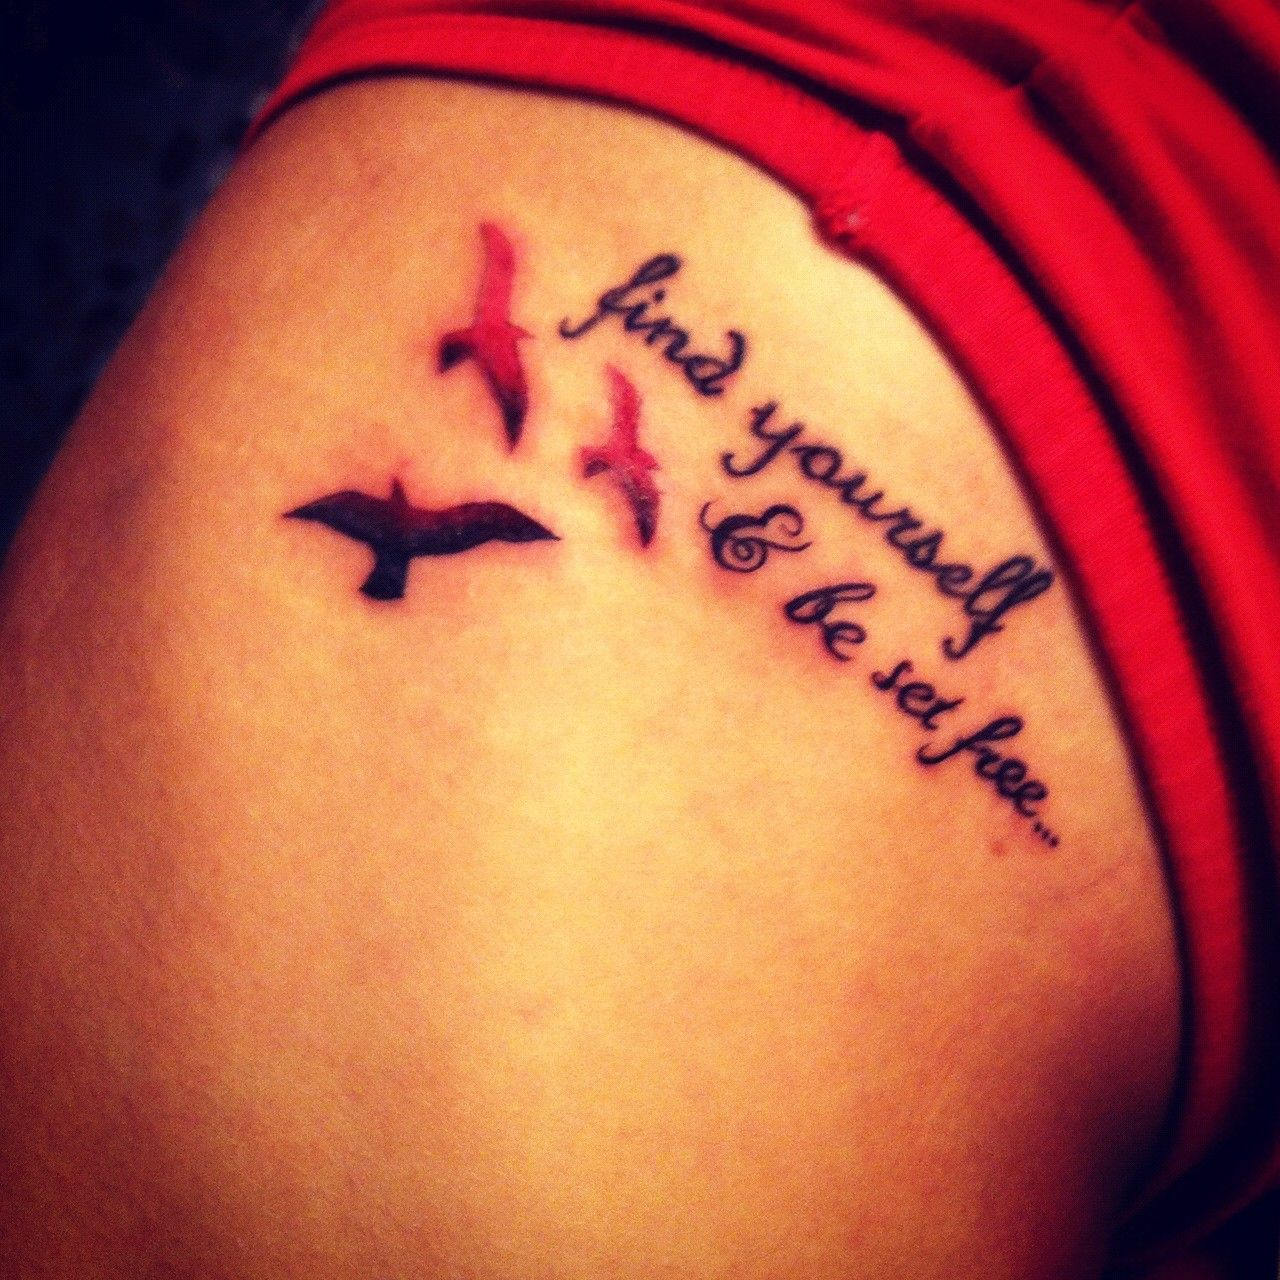 Flying Birds Watercolor Tattoo Quotes On Arm